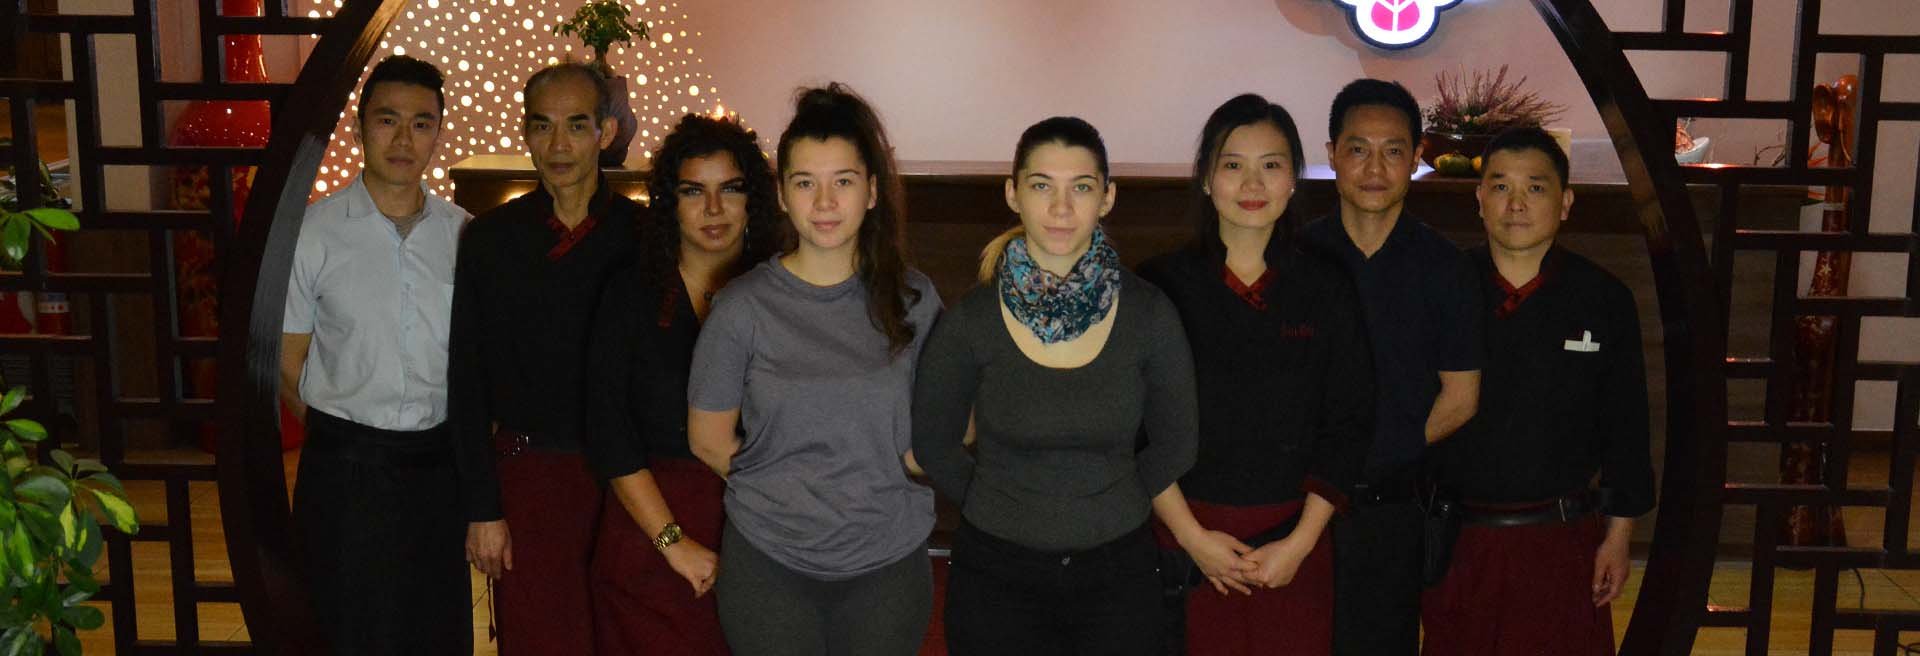 shi_mei_gelsenkirchen_asian_food_experience_buffet_restaurant_asia_team.jpg